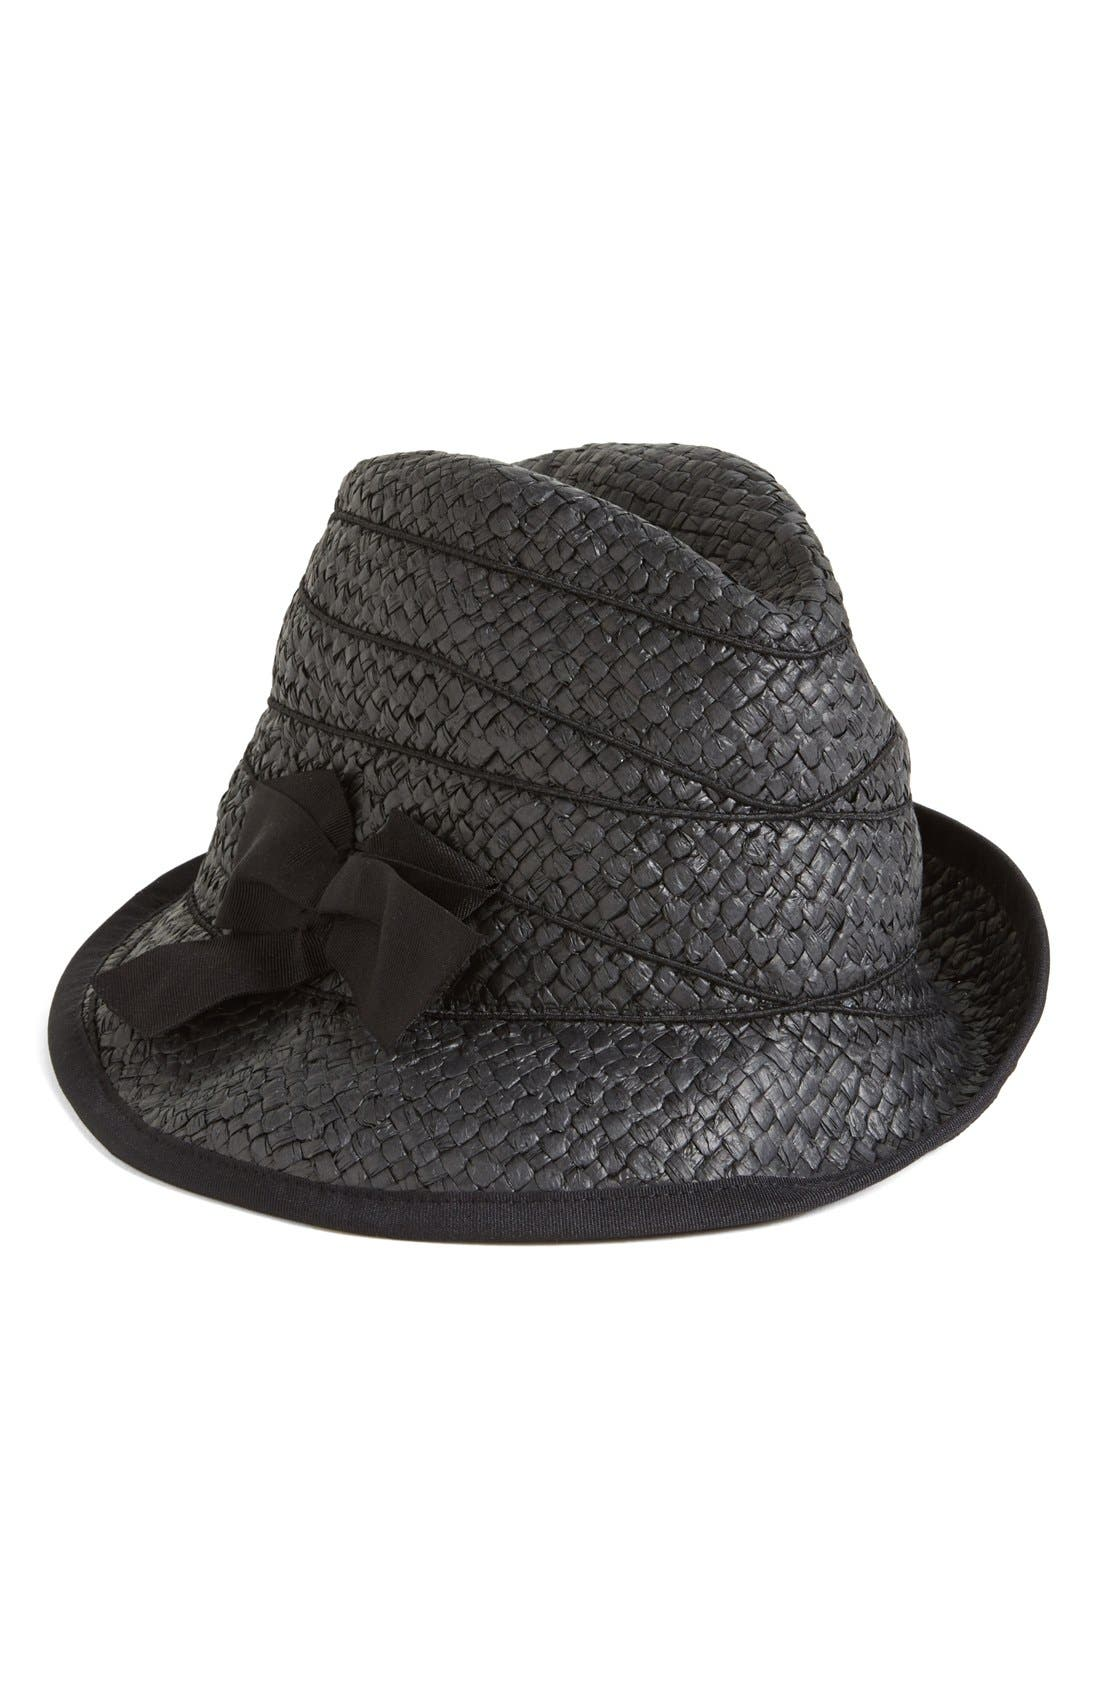 Main Image - August Hat Bow Fedora